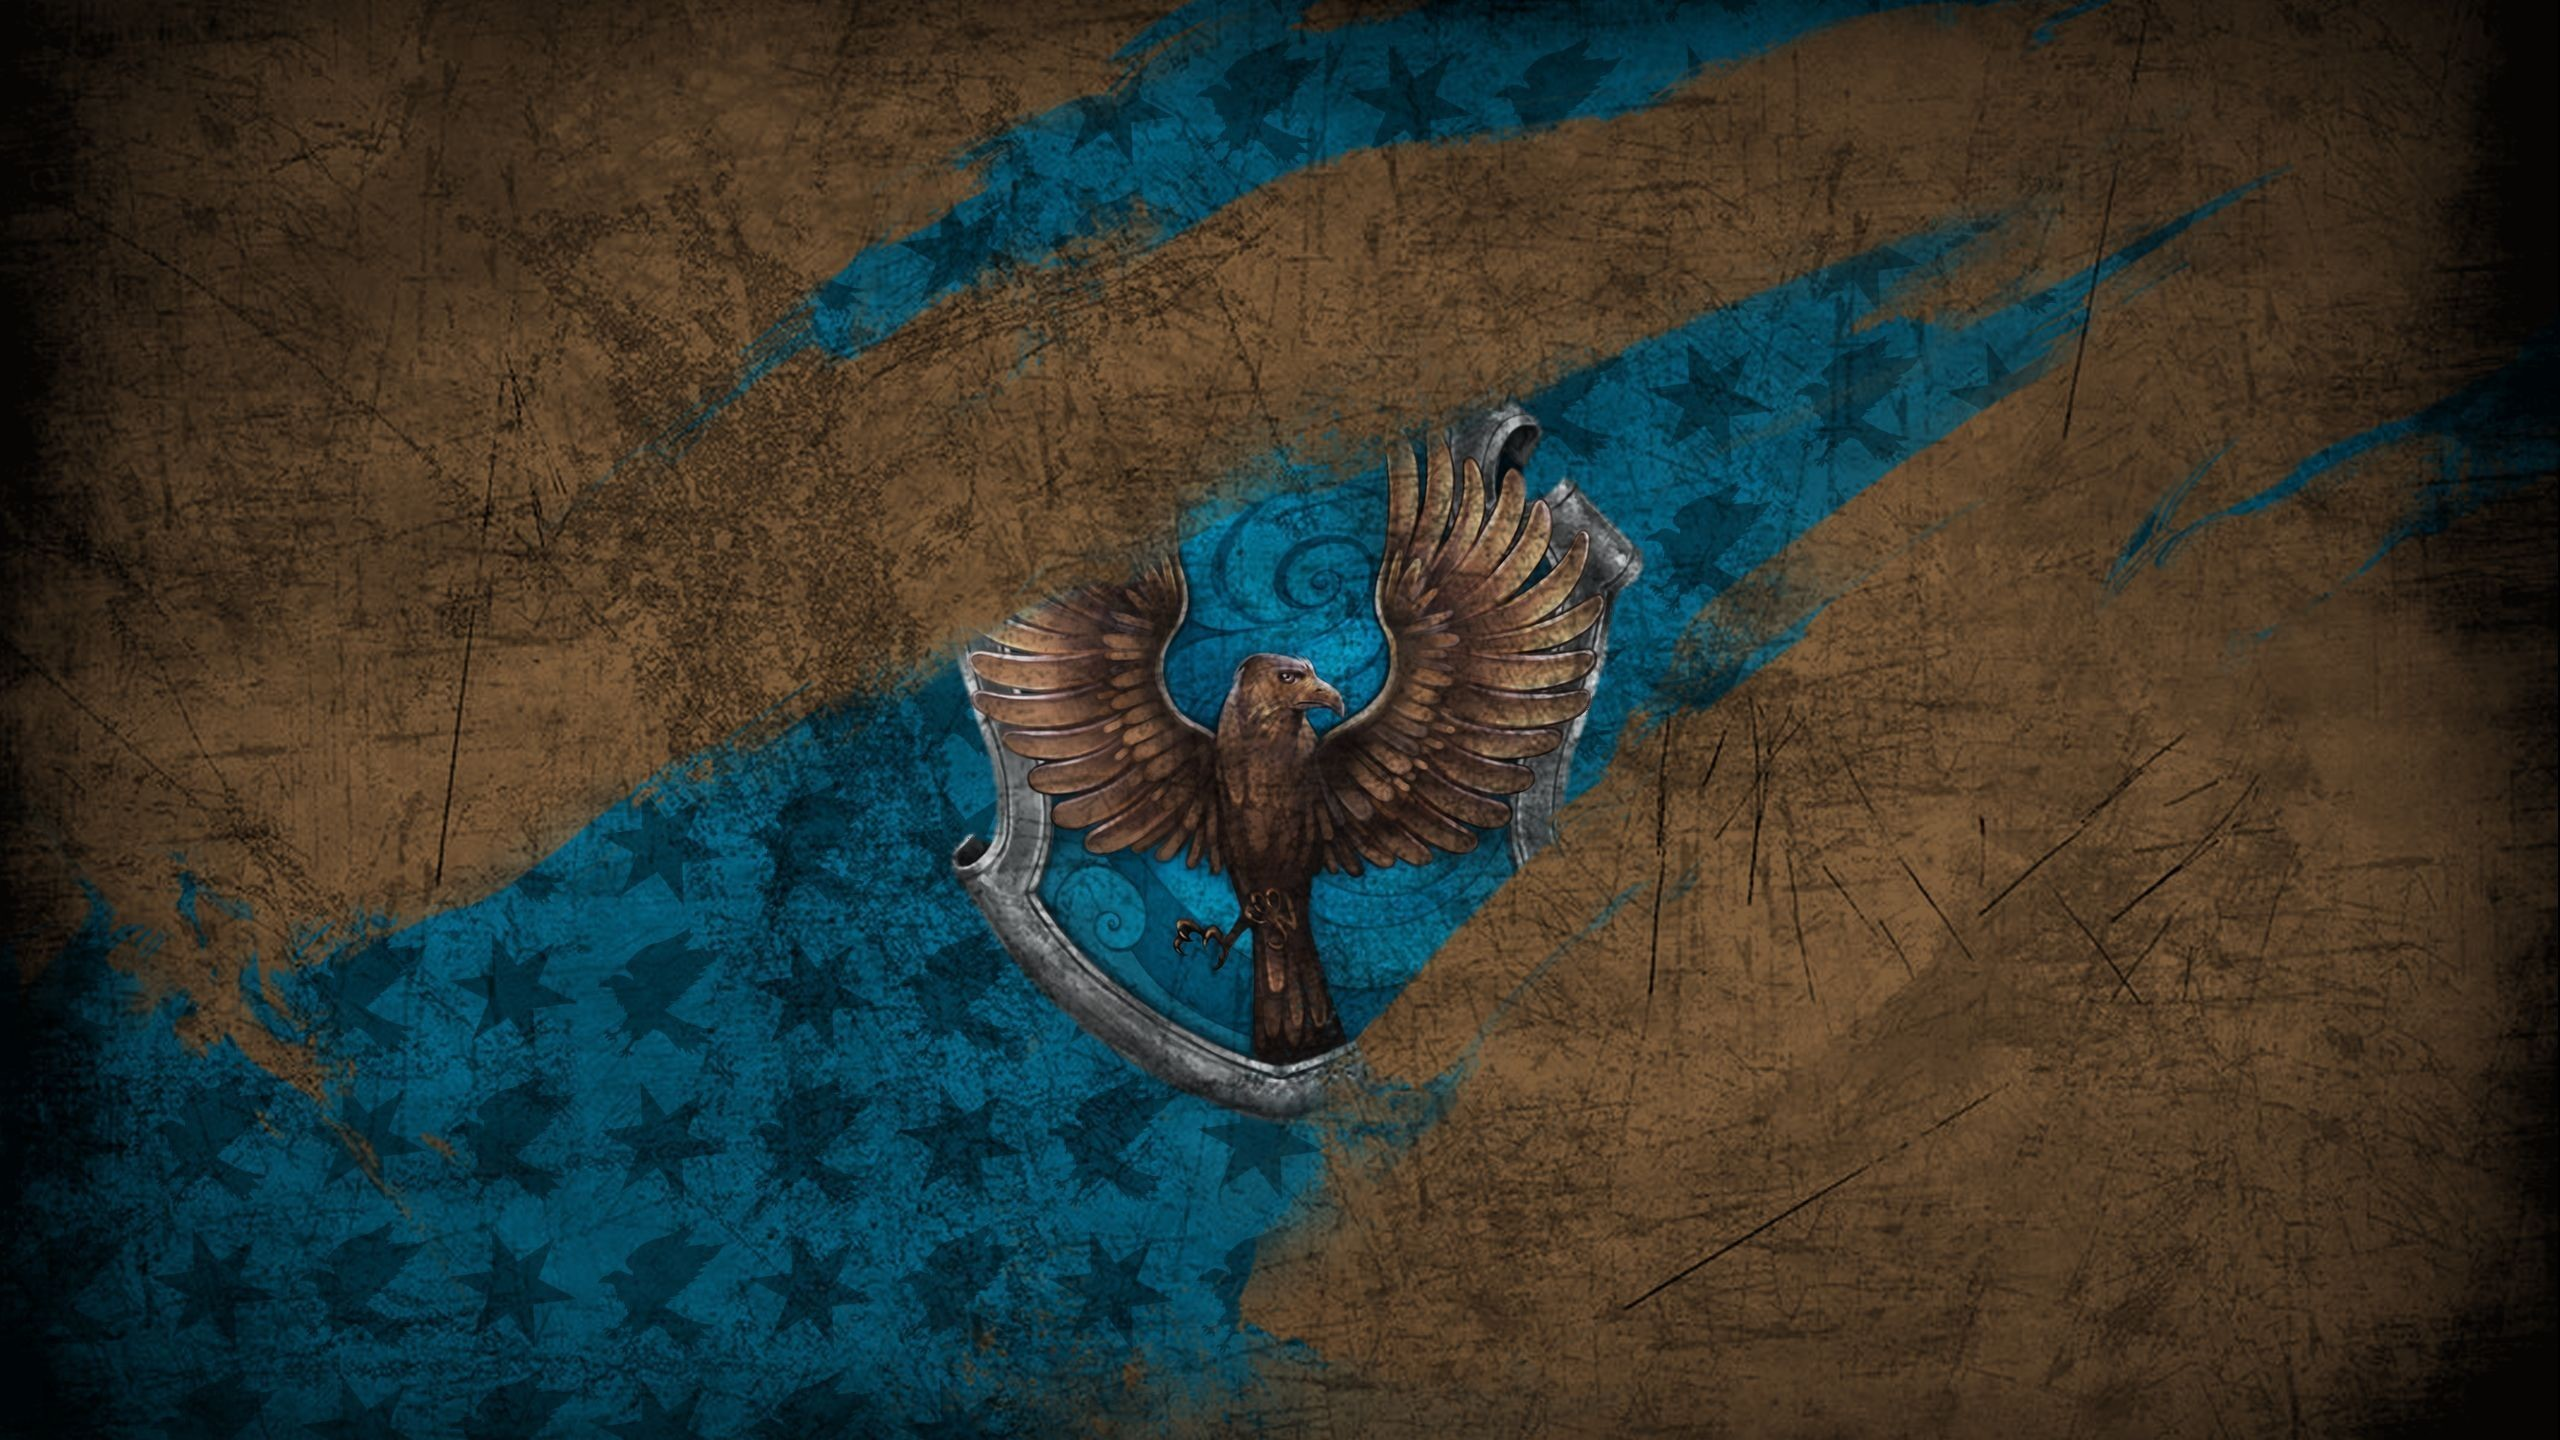 2560x1440  Ravenclaw logo - Harry Potter desktop wallpaper 23926 · 43 ·  Download · Res: 1920x1200 ...